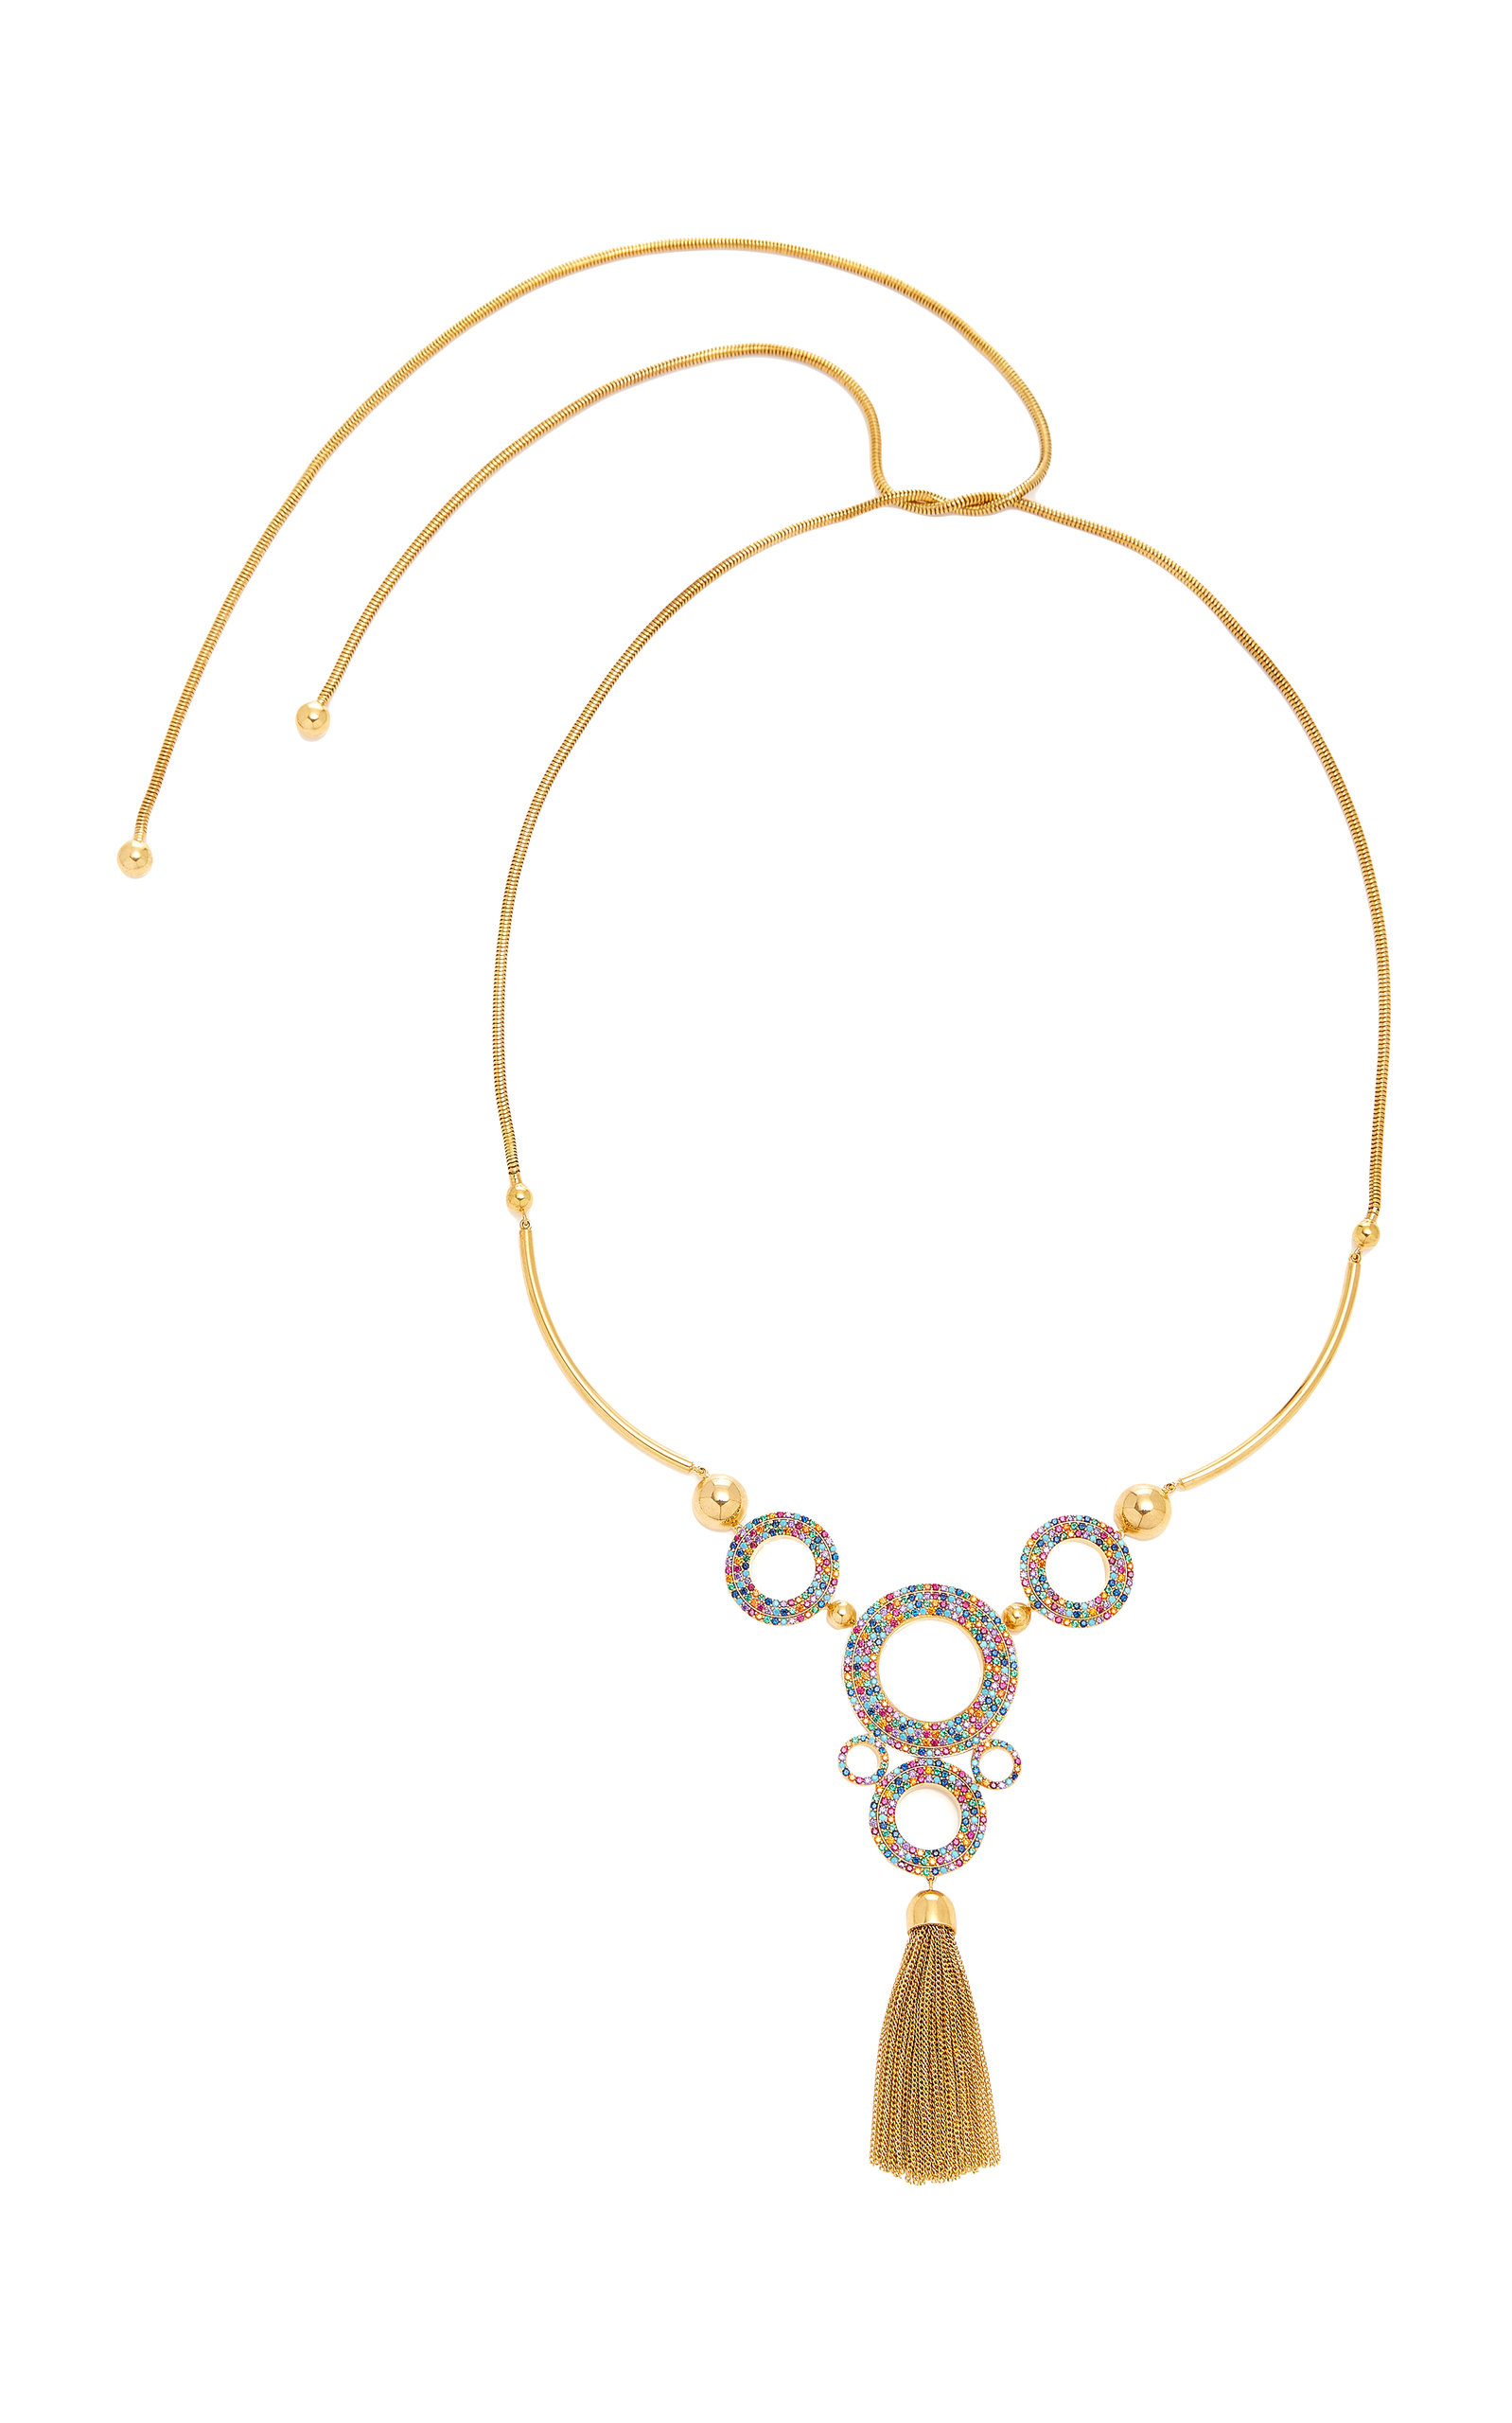 JOANNA LAURA CONSTANTINE LONG CHAIN RAINBOW GROMMETS GOLD-PLATED BRASS AND CUBIC ZIRCONIA NECKLACE